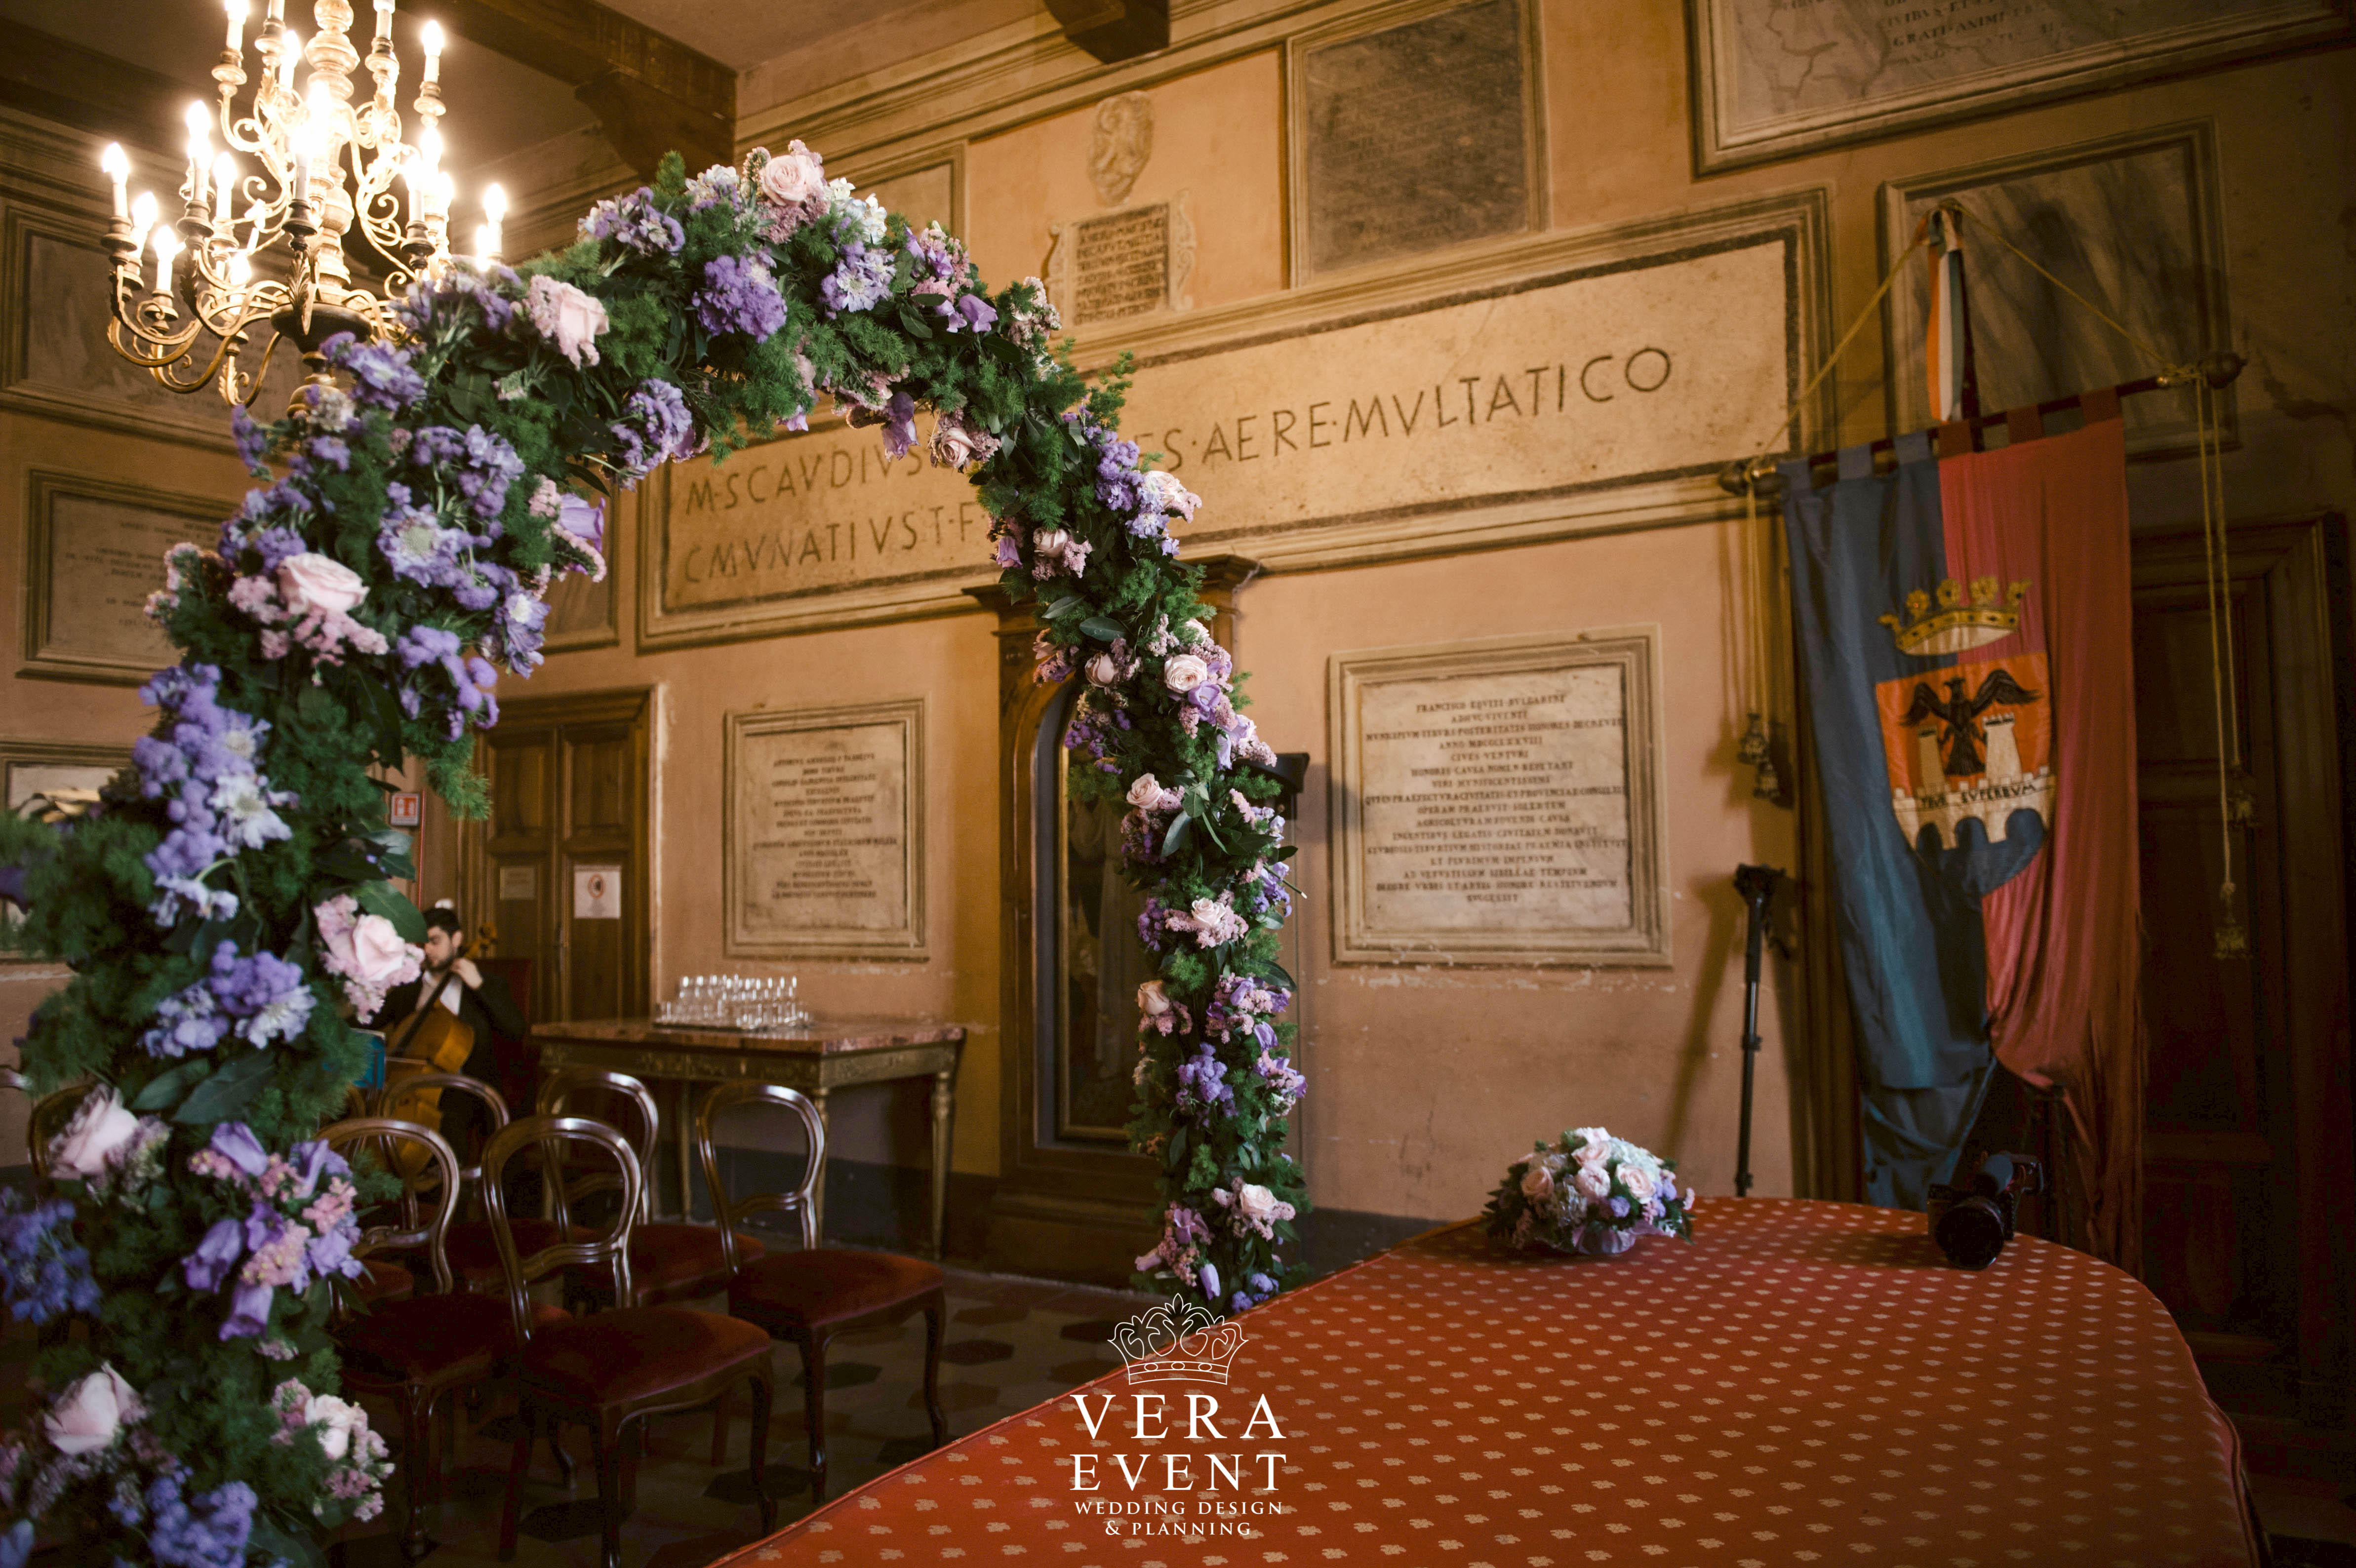 Funda & Sertan #weddingsinitaly